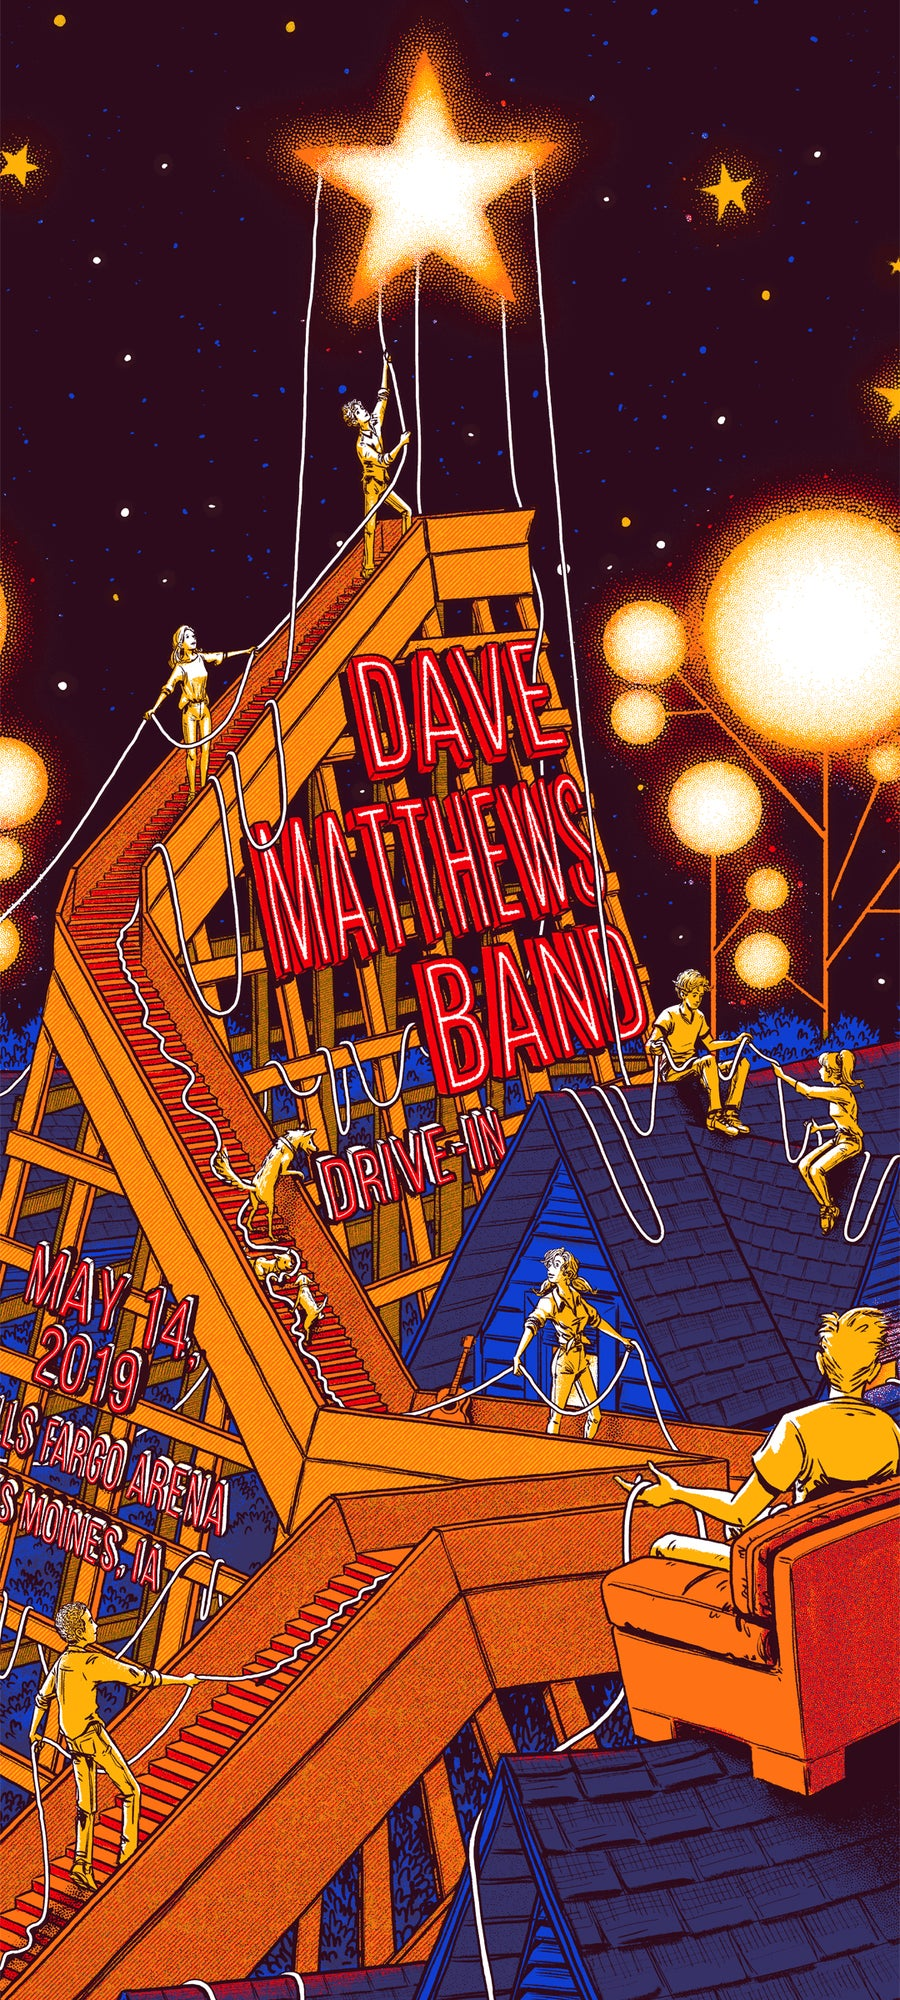 Image of Dave Matthews Band - Drive-In 2020